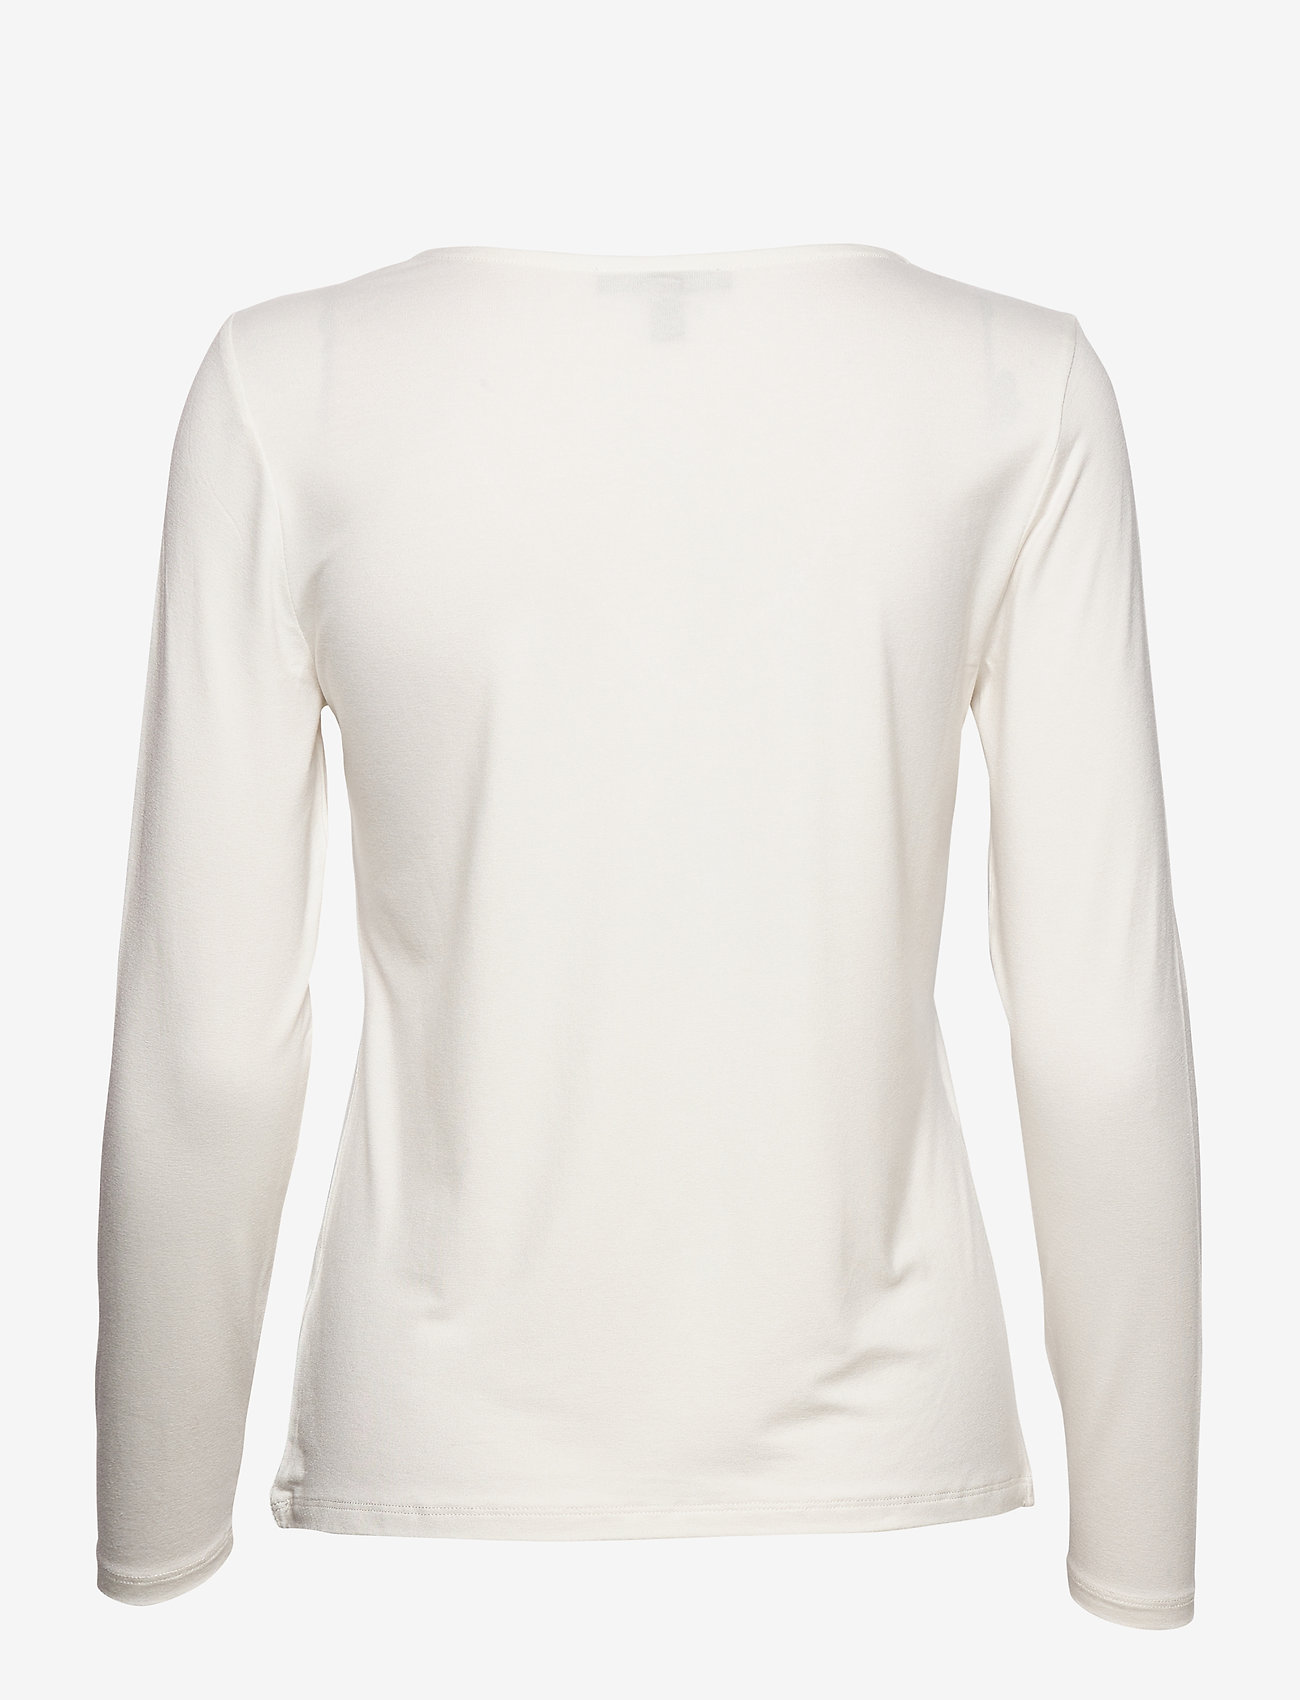 Esprit Collection - T-Shirts - long-sleeved tops - off white - 1